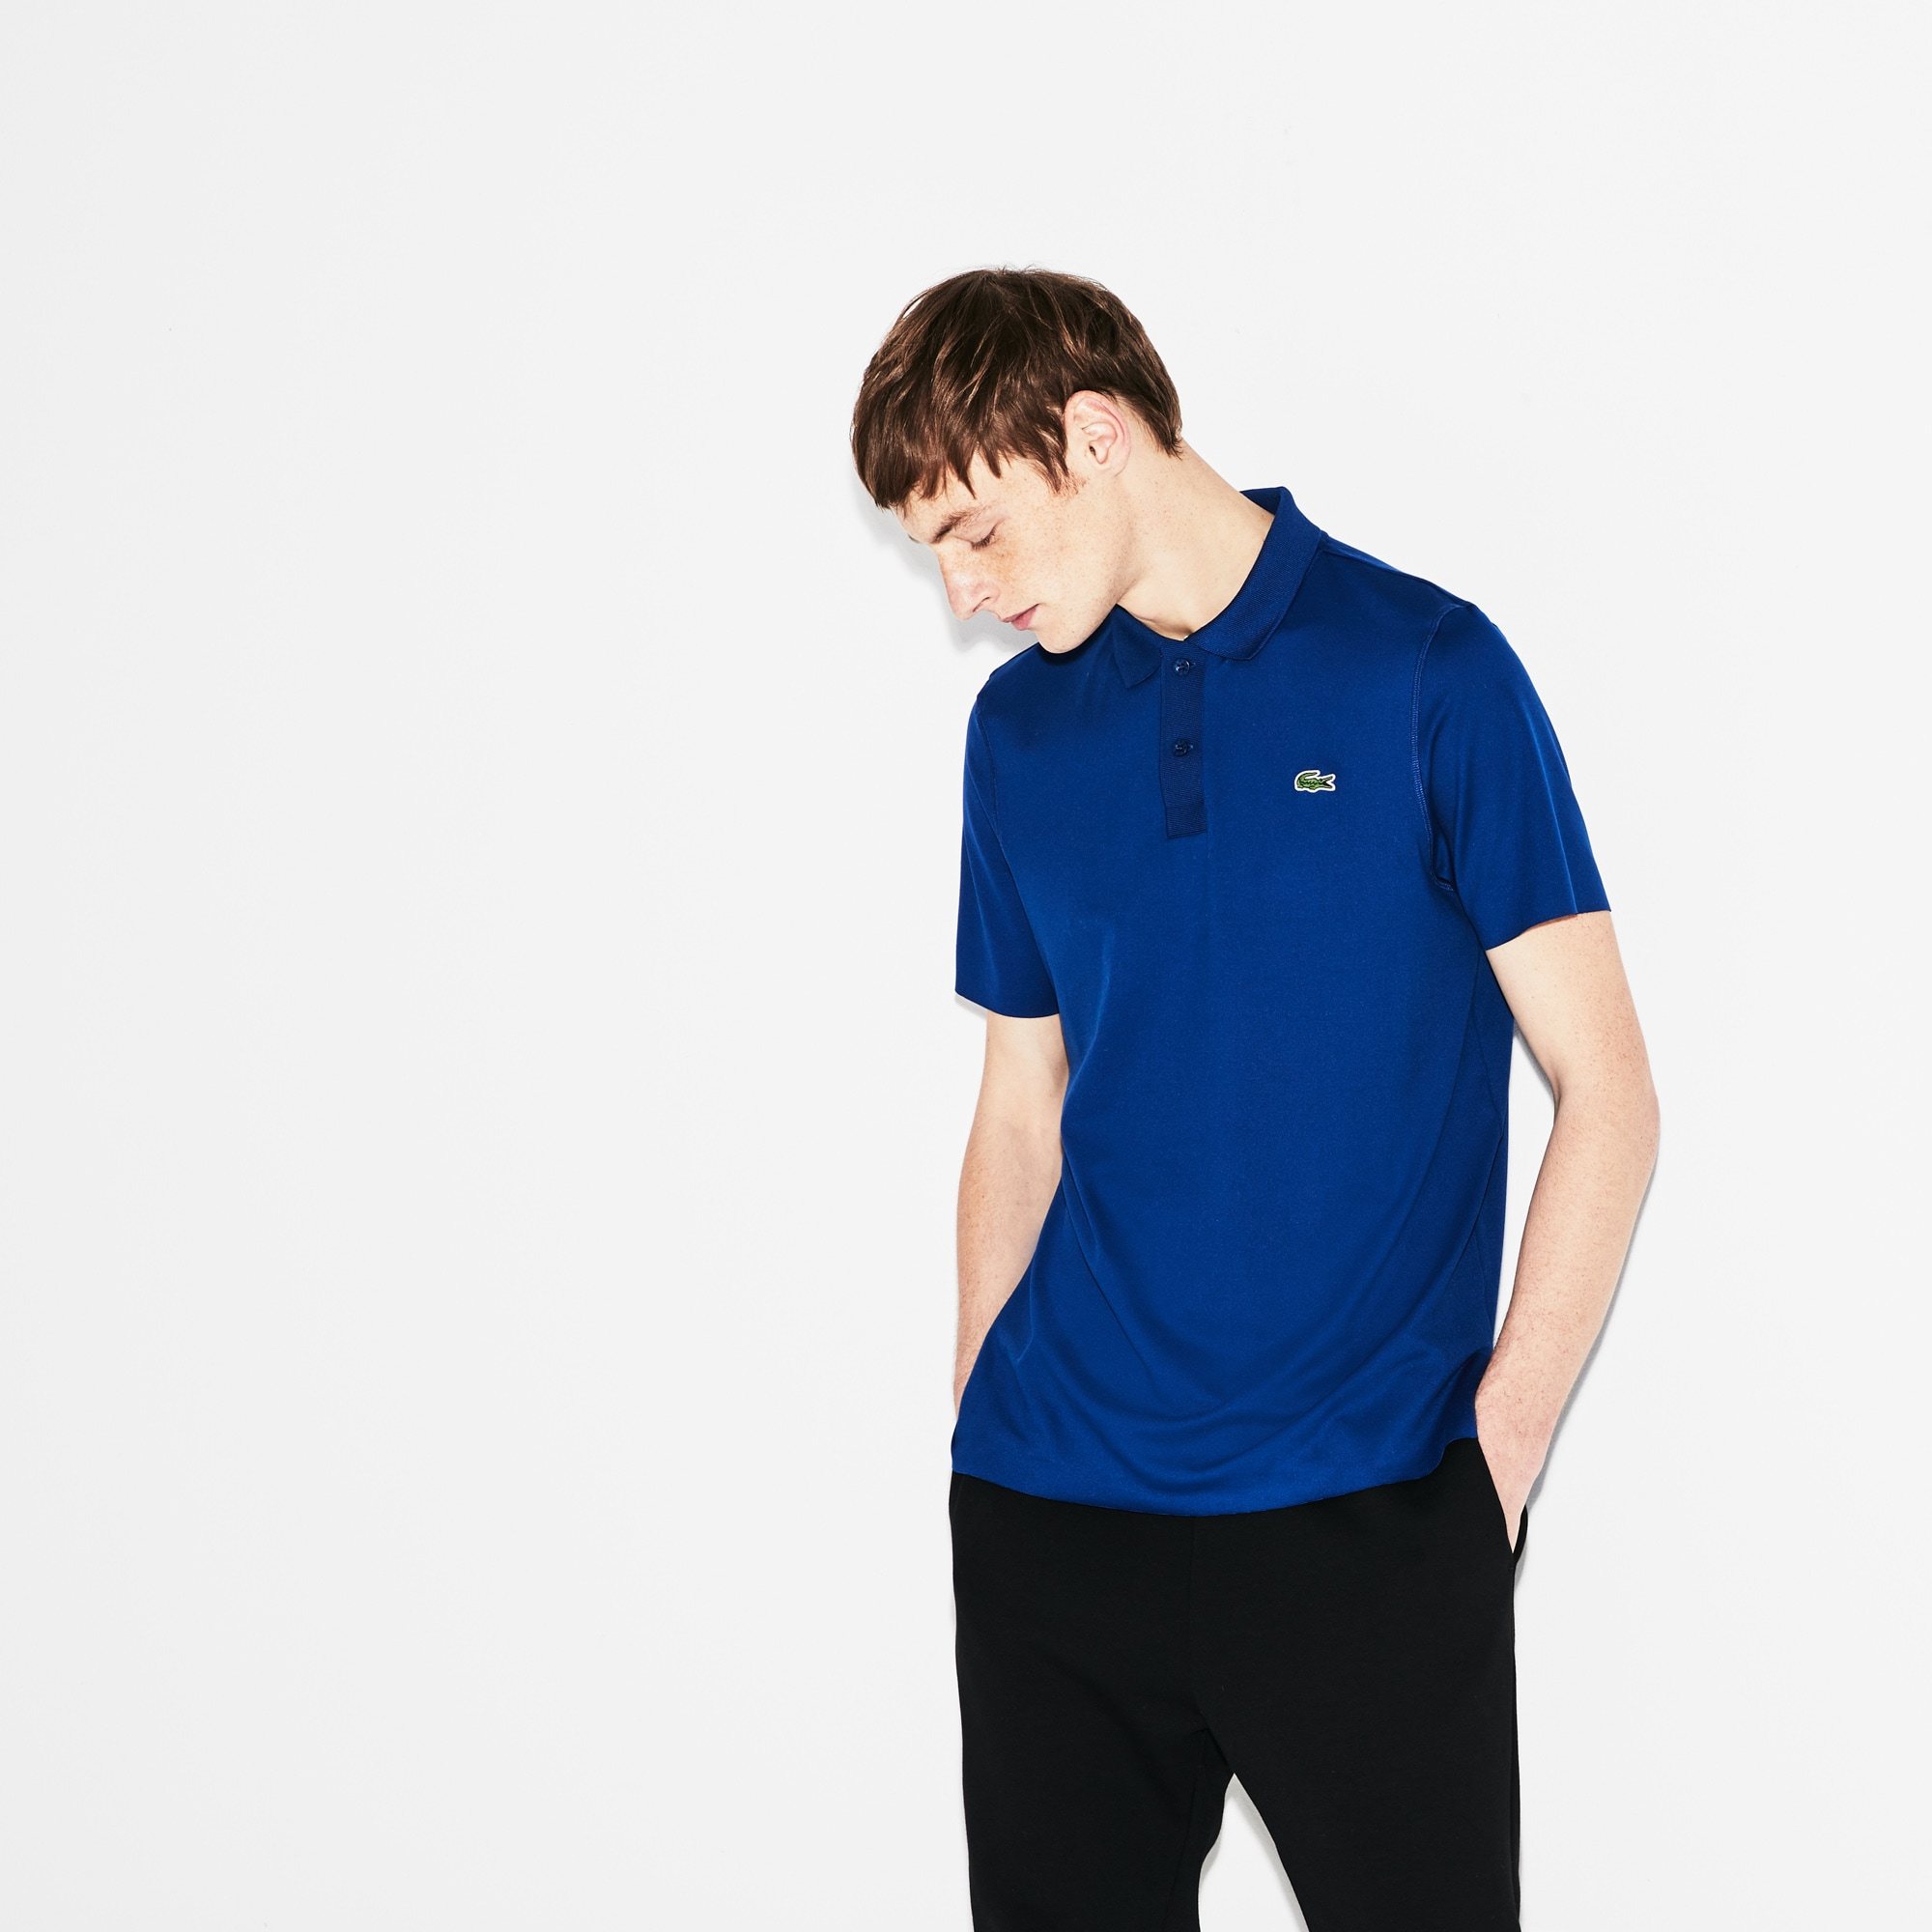 Men's SPORT Flecked Stretch Jersey Tennis Polo